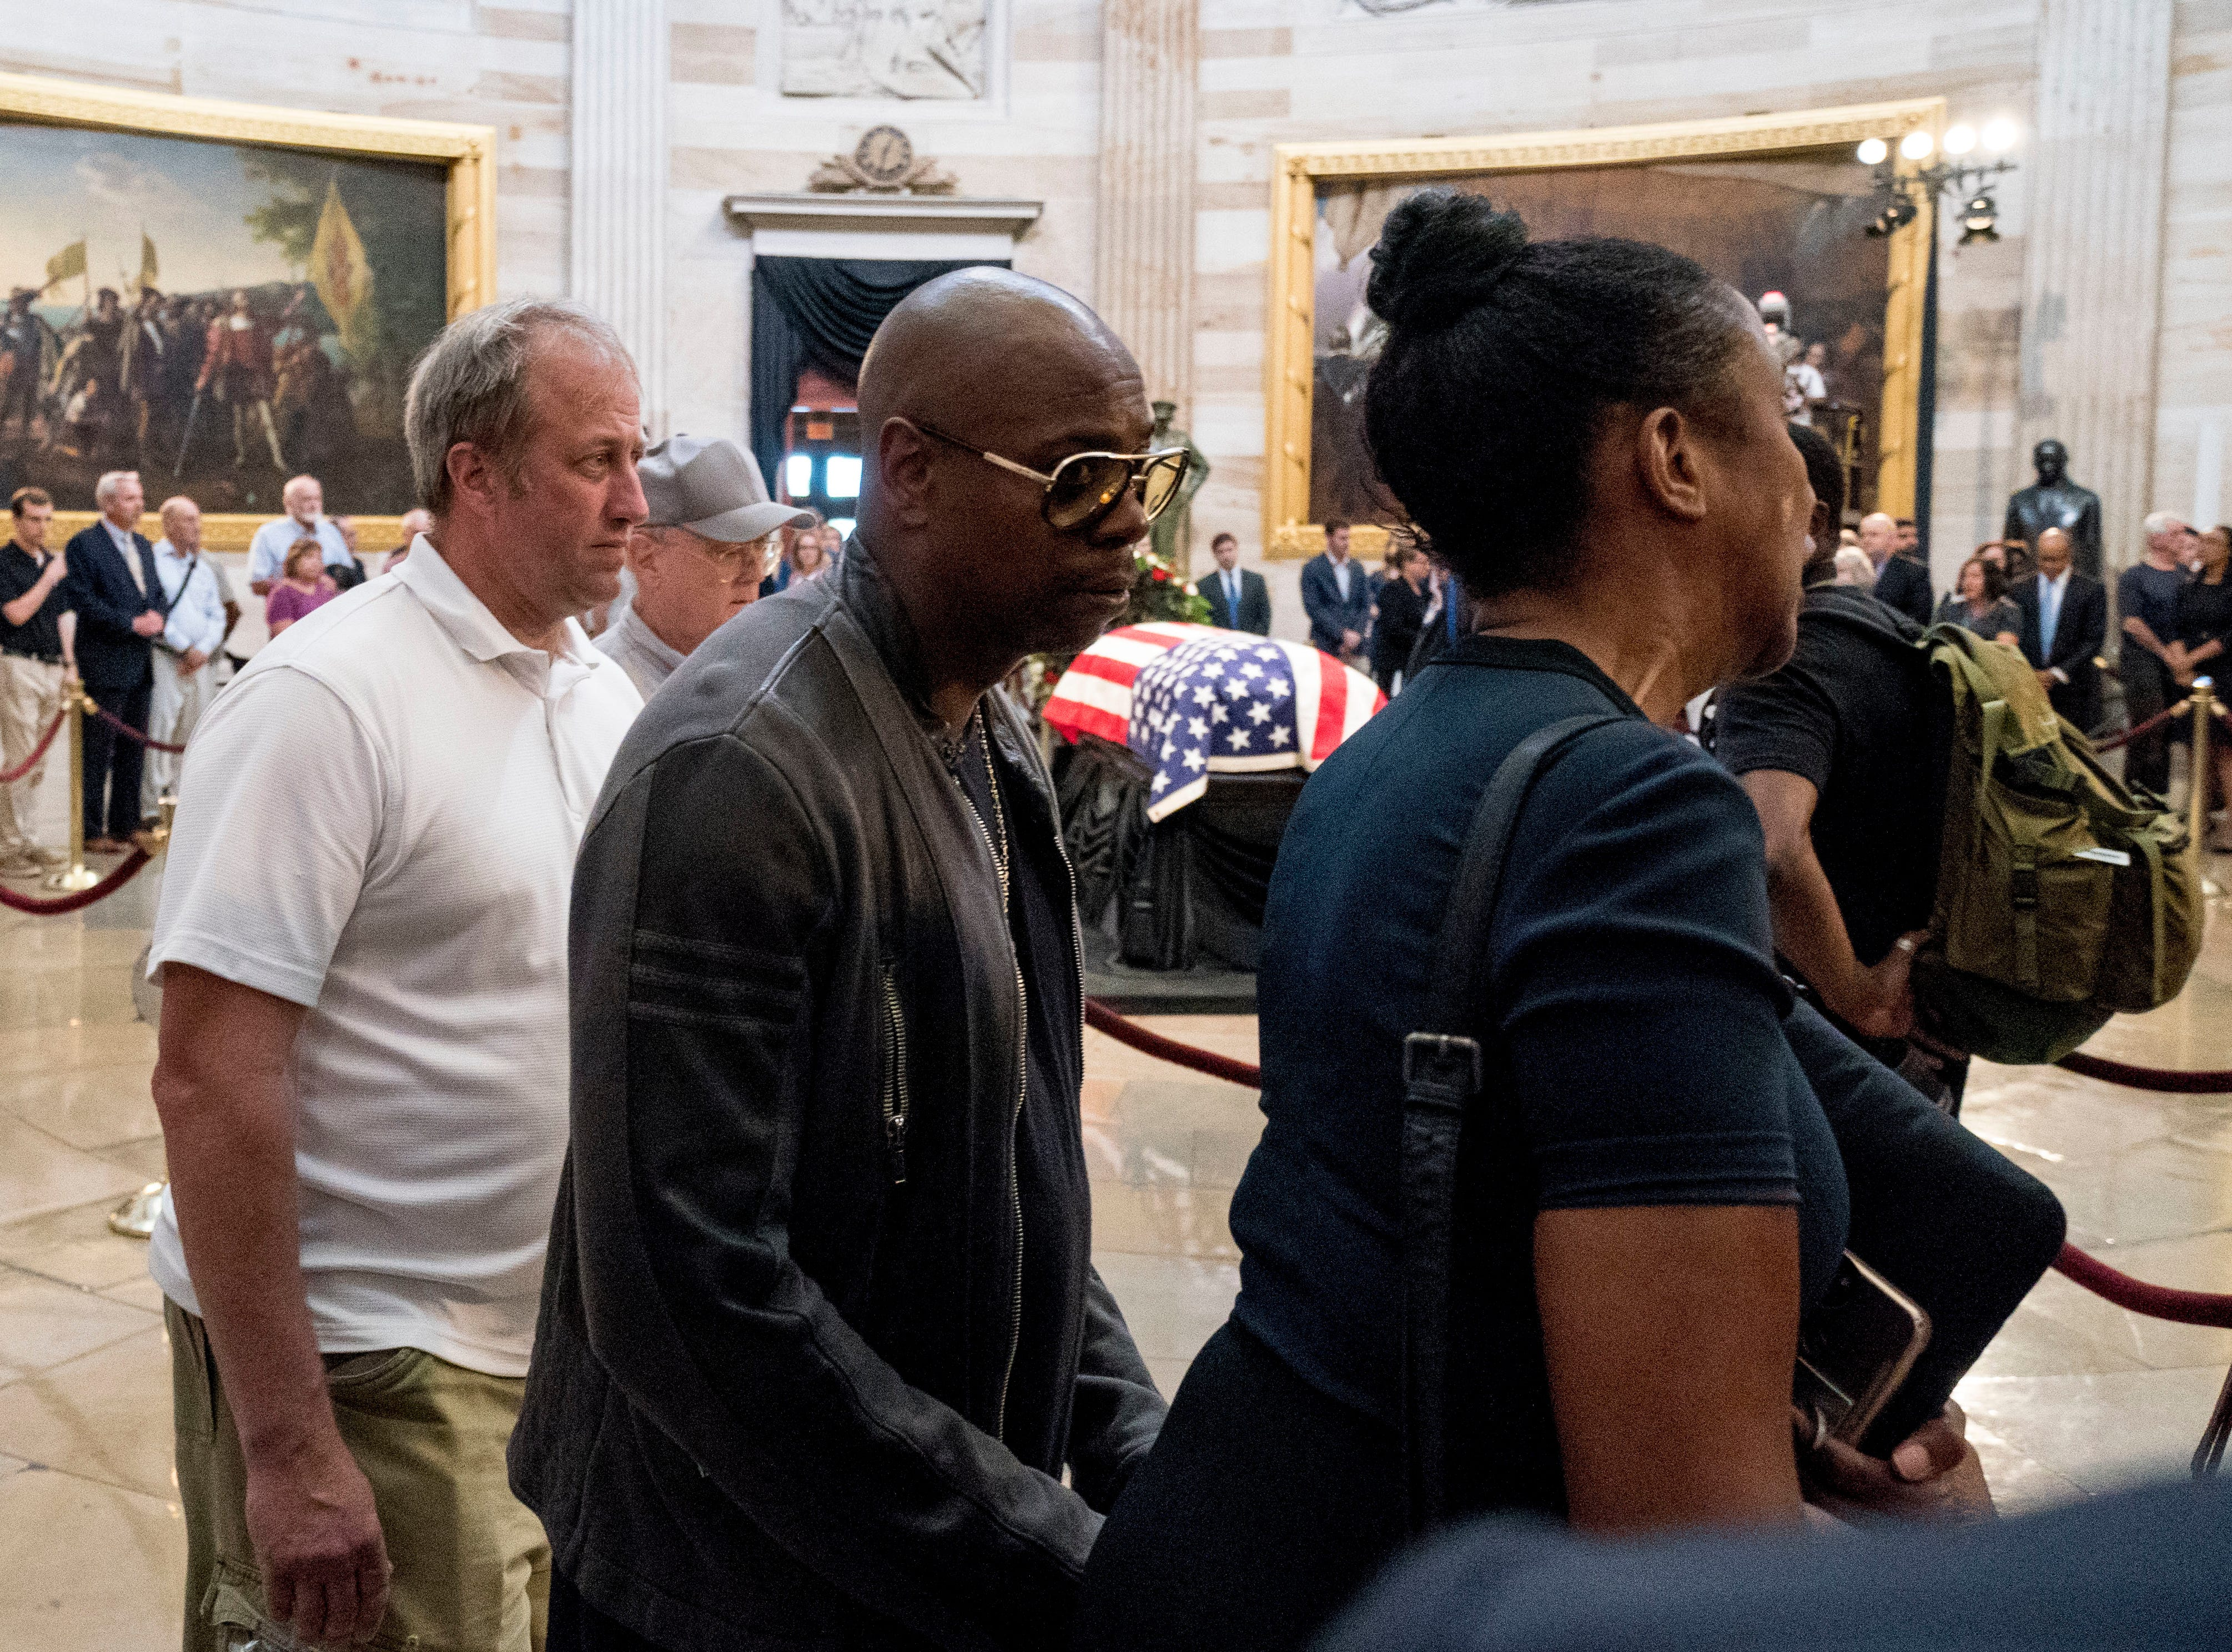 Comedian Dave Chappelle, center, walks through the Rotunda as Sen. John McCain, R-Ariz., lies in state at the U.S. Capitol, Friday, Aug. 31, 2018, in Washington. (AP Photo/Andrew Harnik)